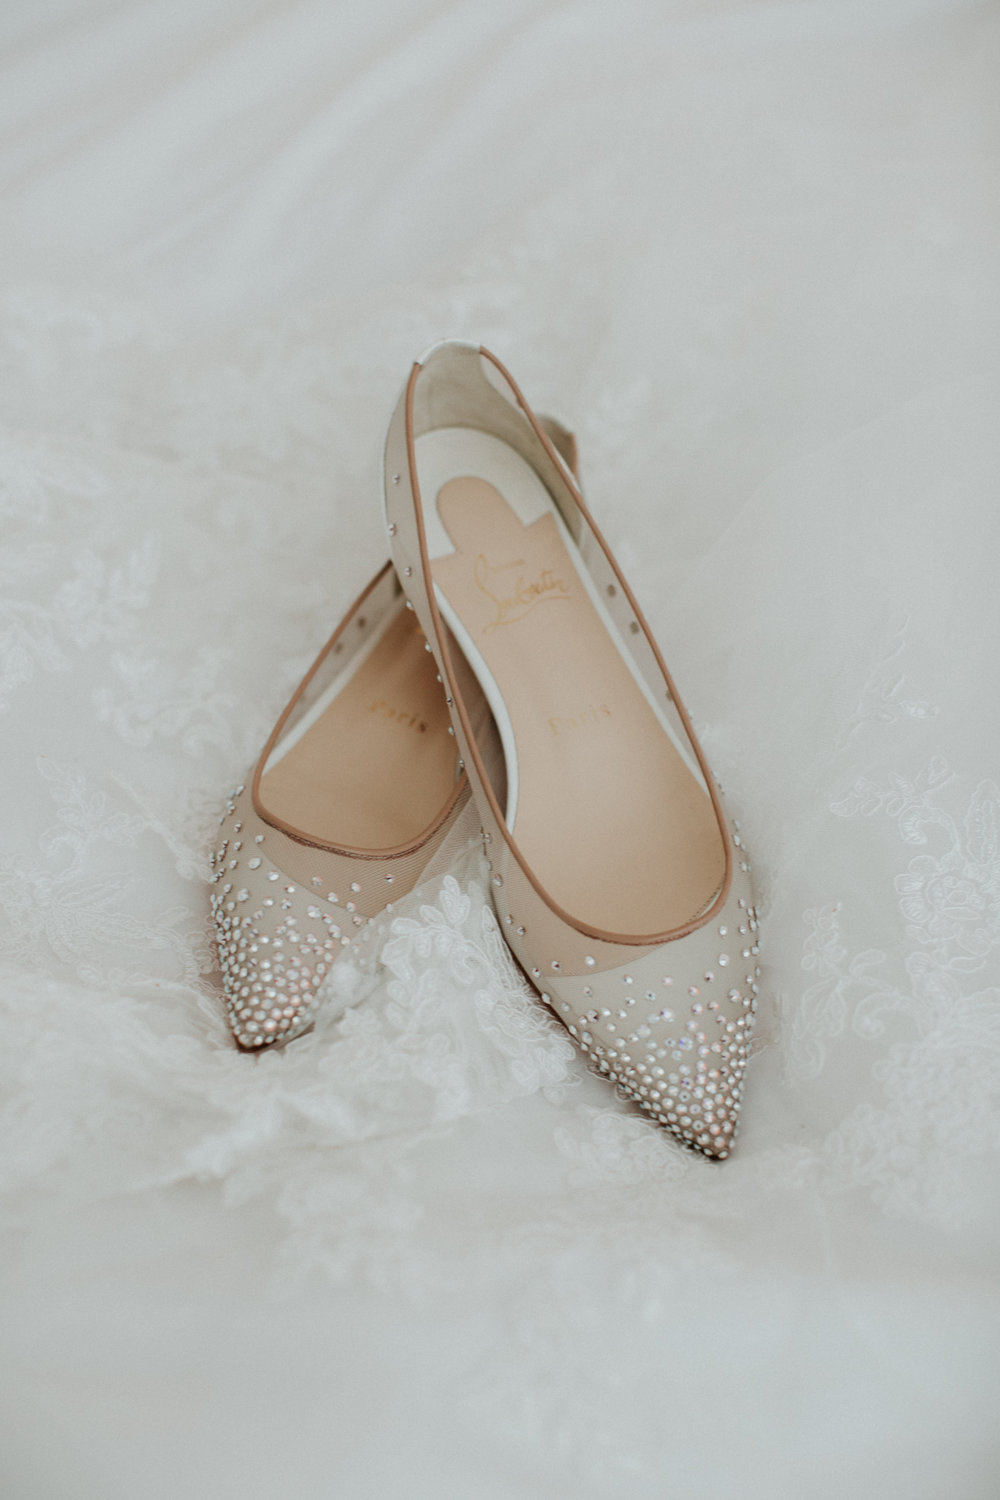 louboutin flats wedding